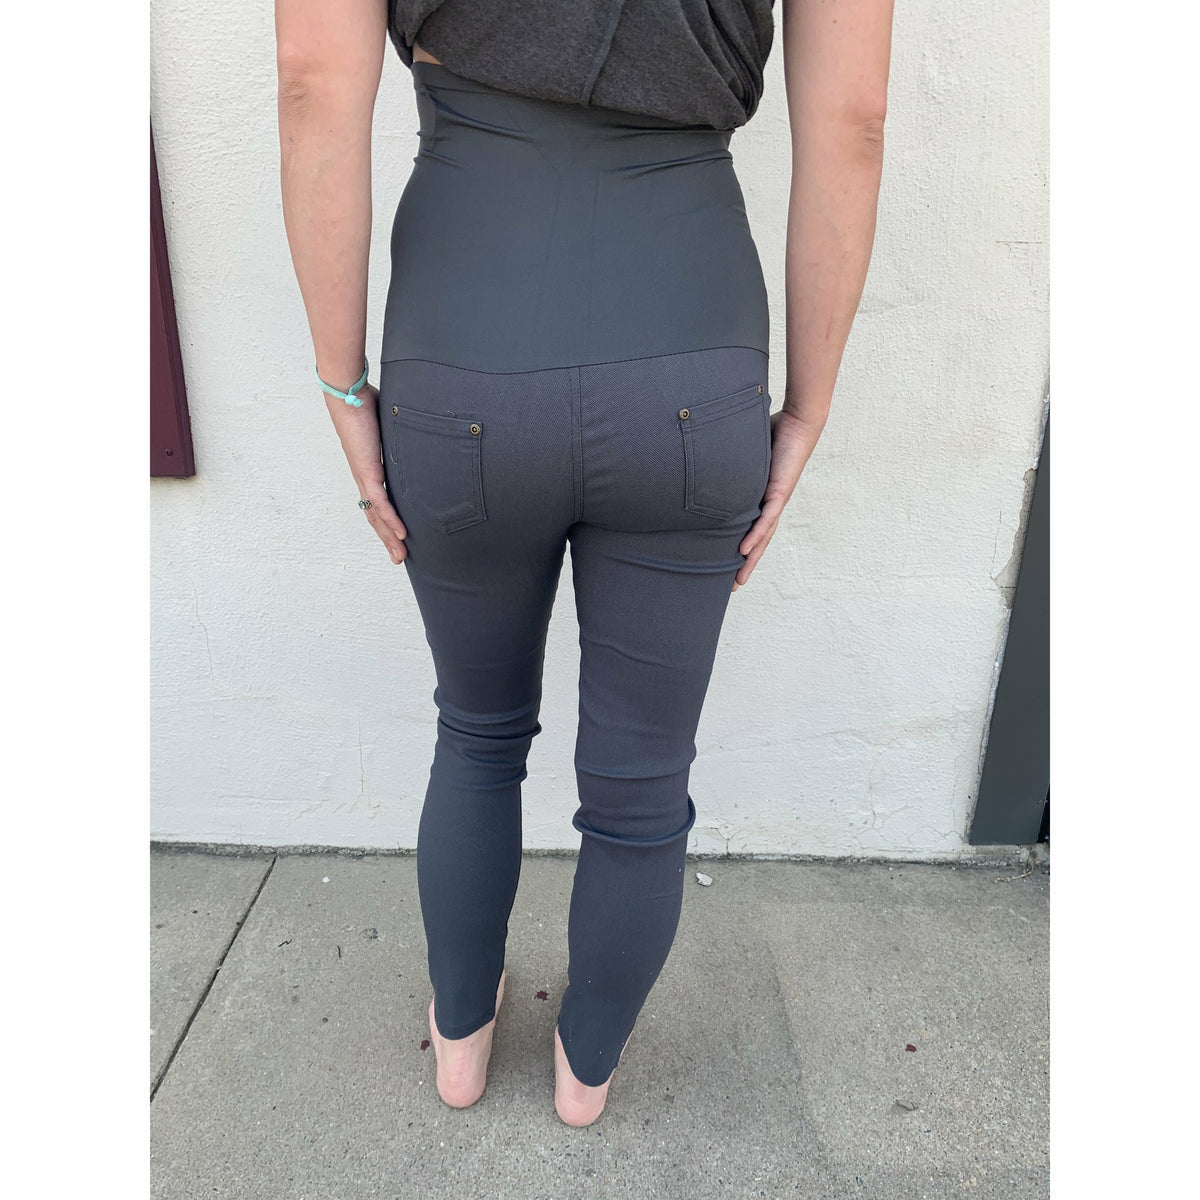 Maternity pants ( several colors)